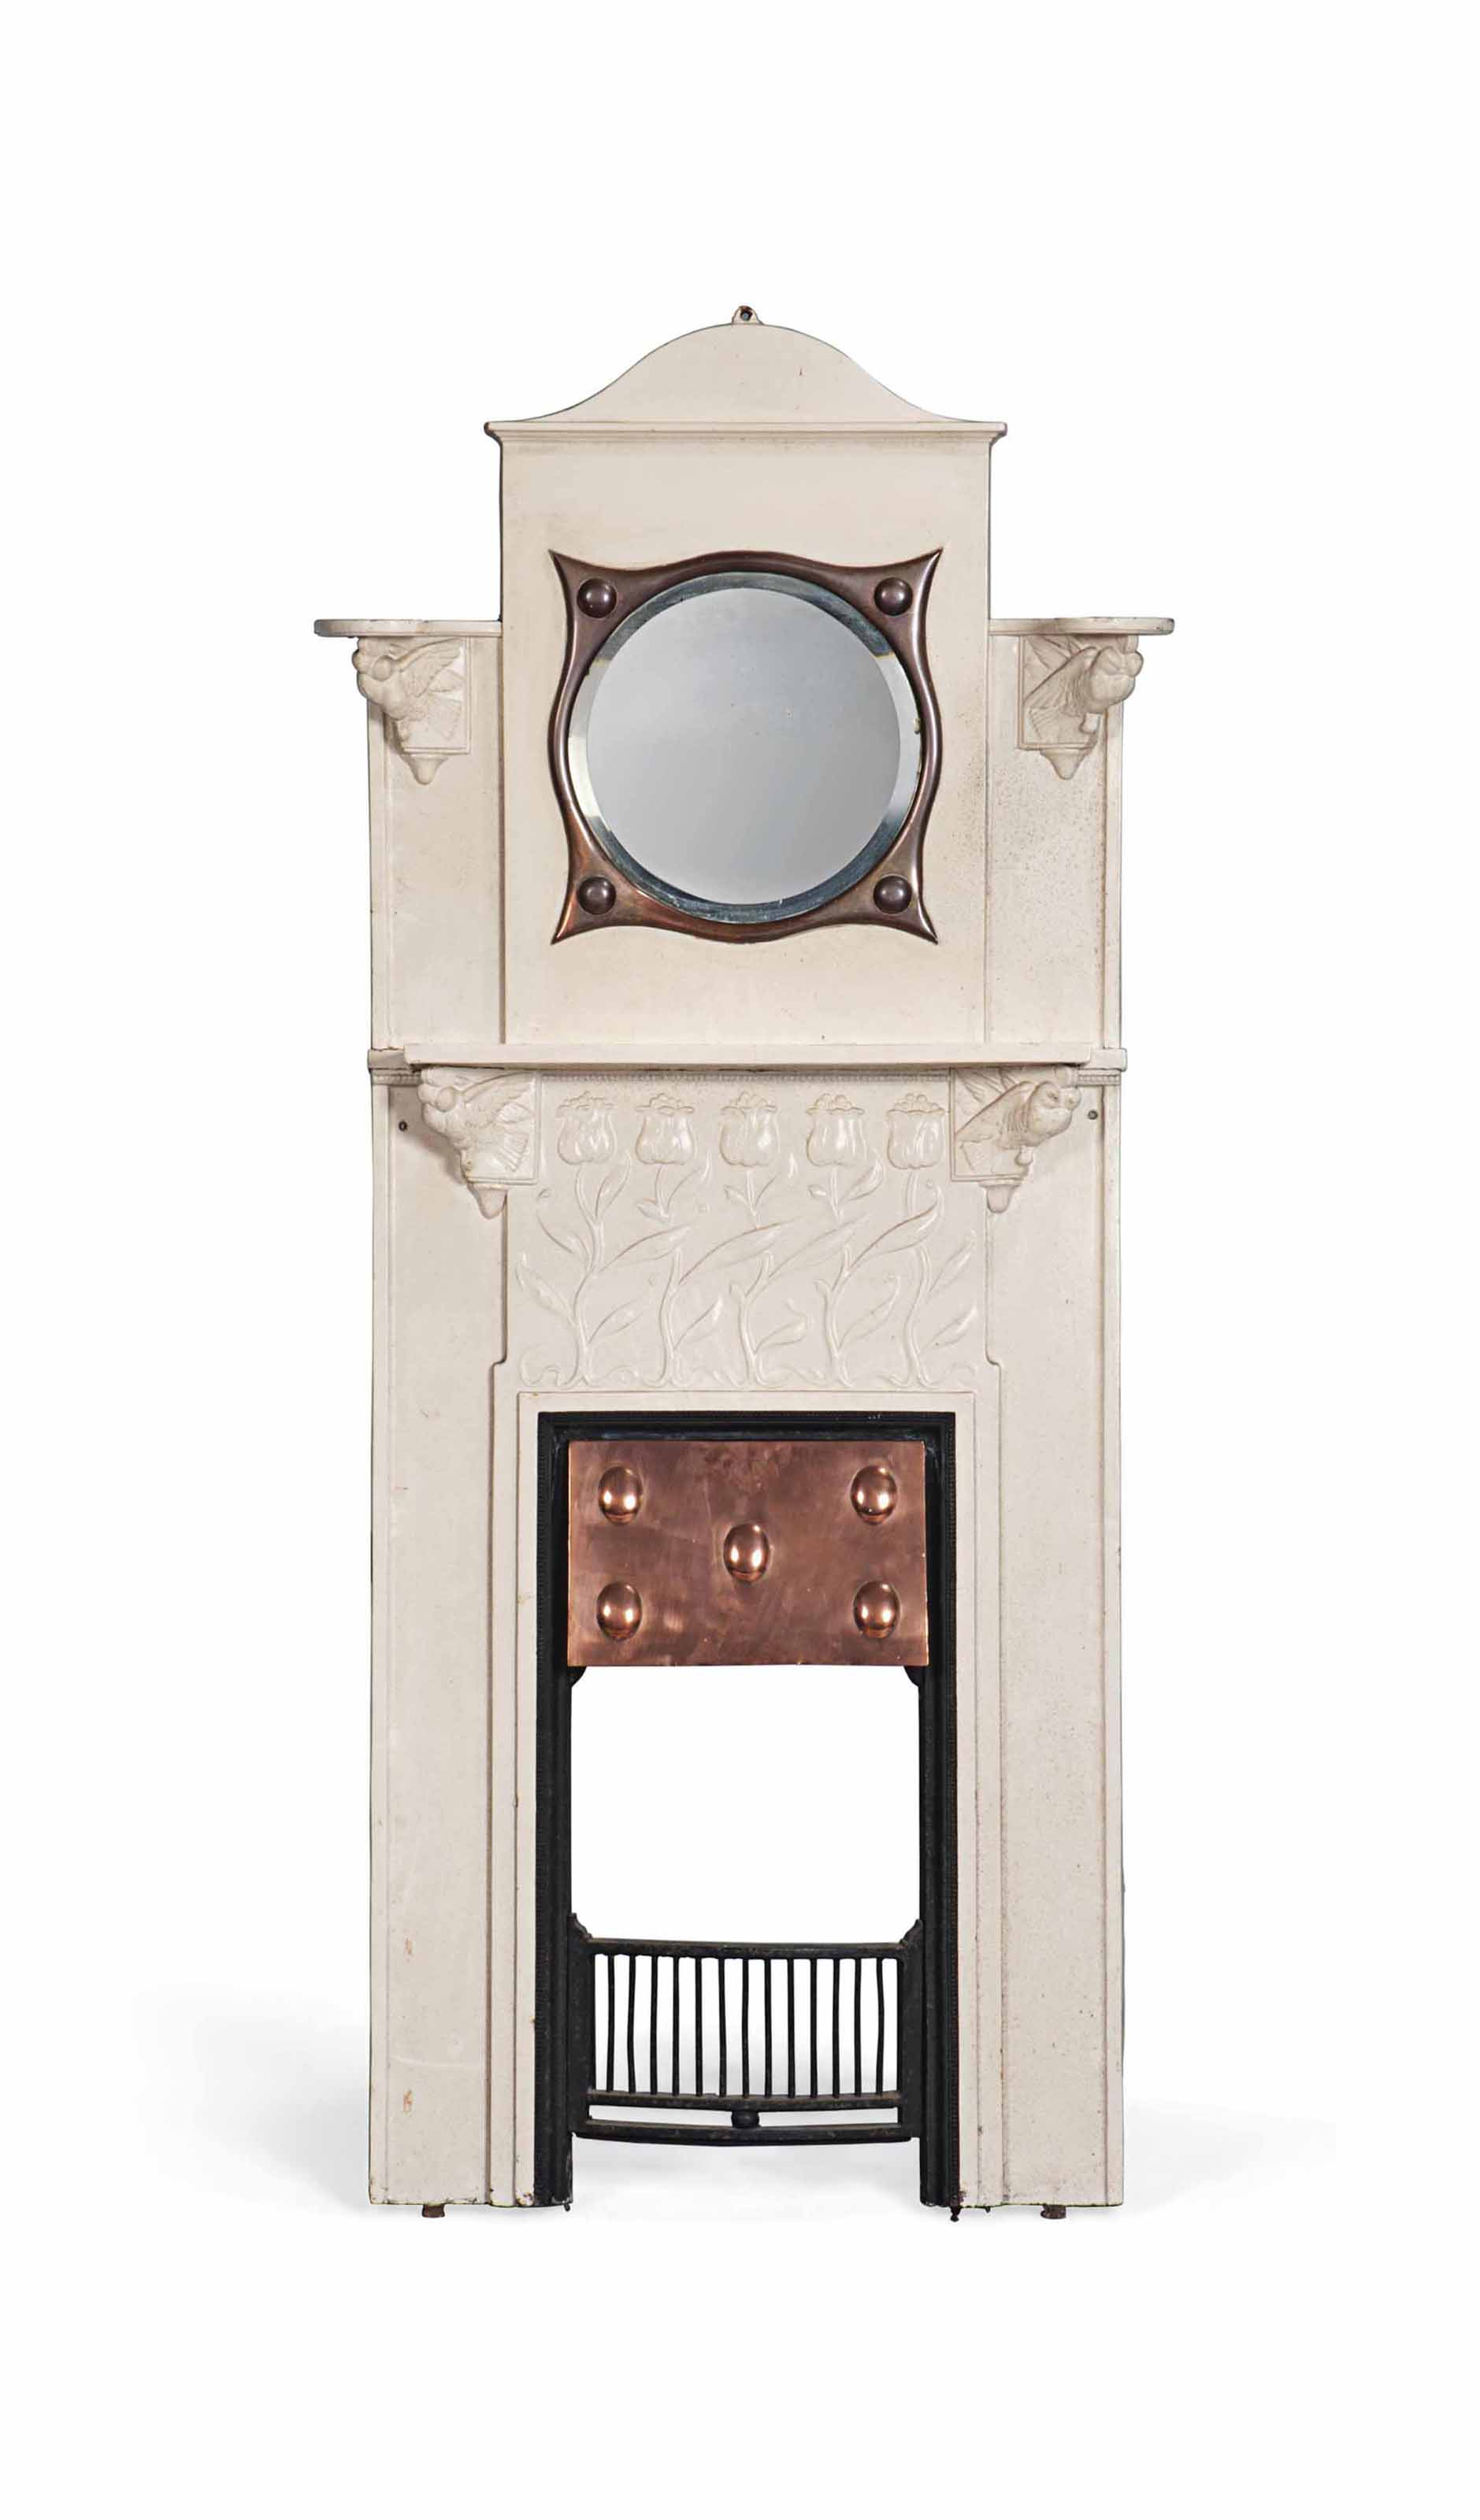 A PAINTED CAST-IRON FIRE-SURROUND WITH MIRRORED OVERMANTEL, ATTRIBUTED TO C.R. ASHBEE (1863-1942)